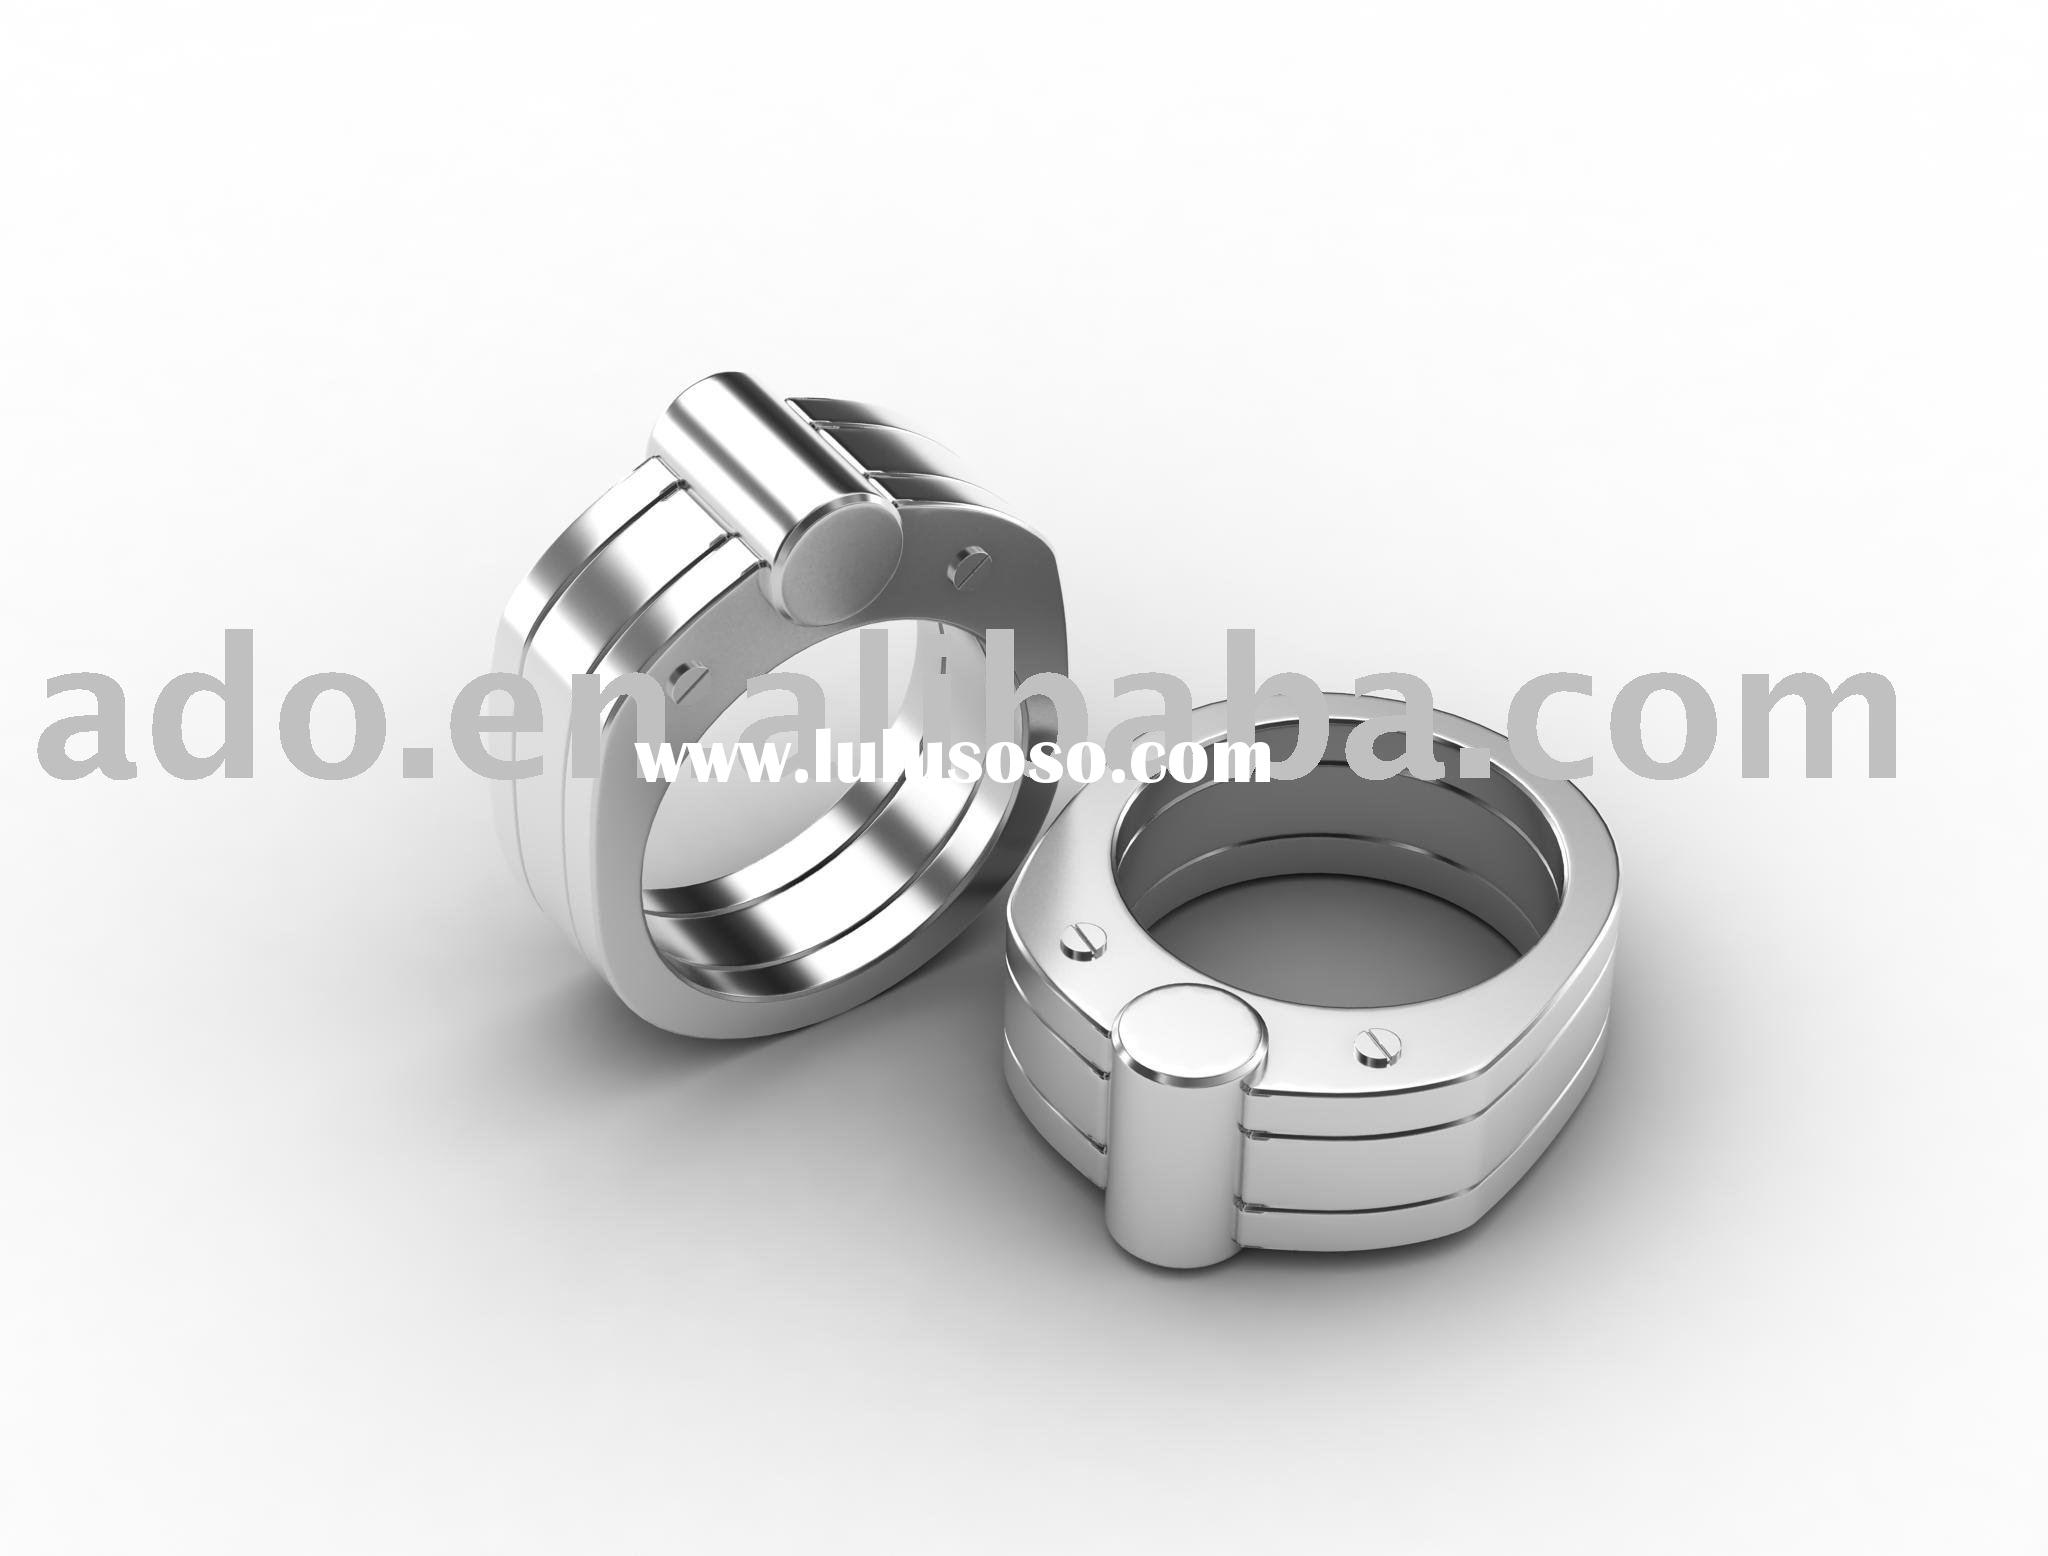 316L Stainless Steel Ring/Fashion Ring/Men's ring/stainless steel jewelry